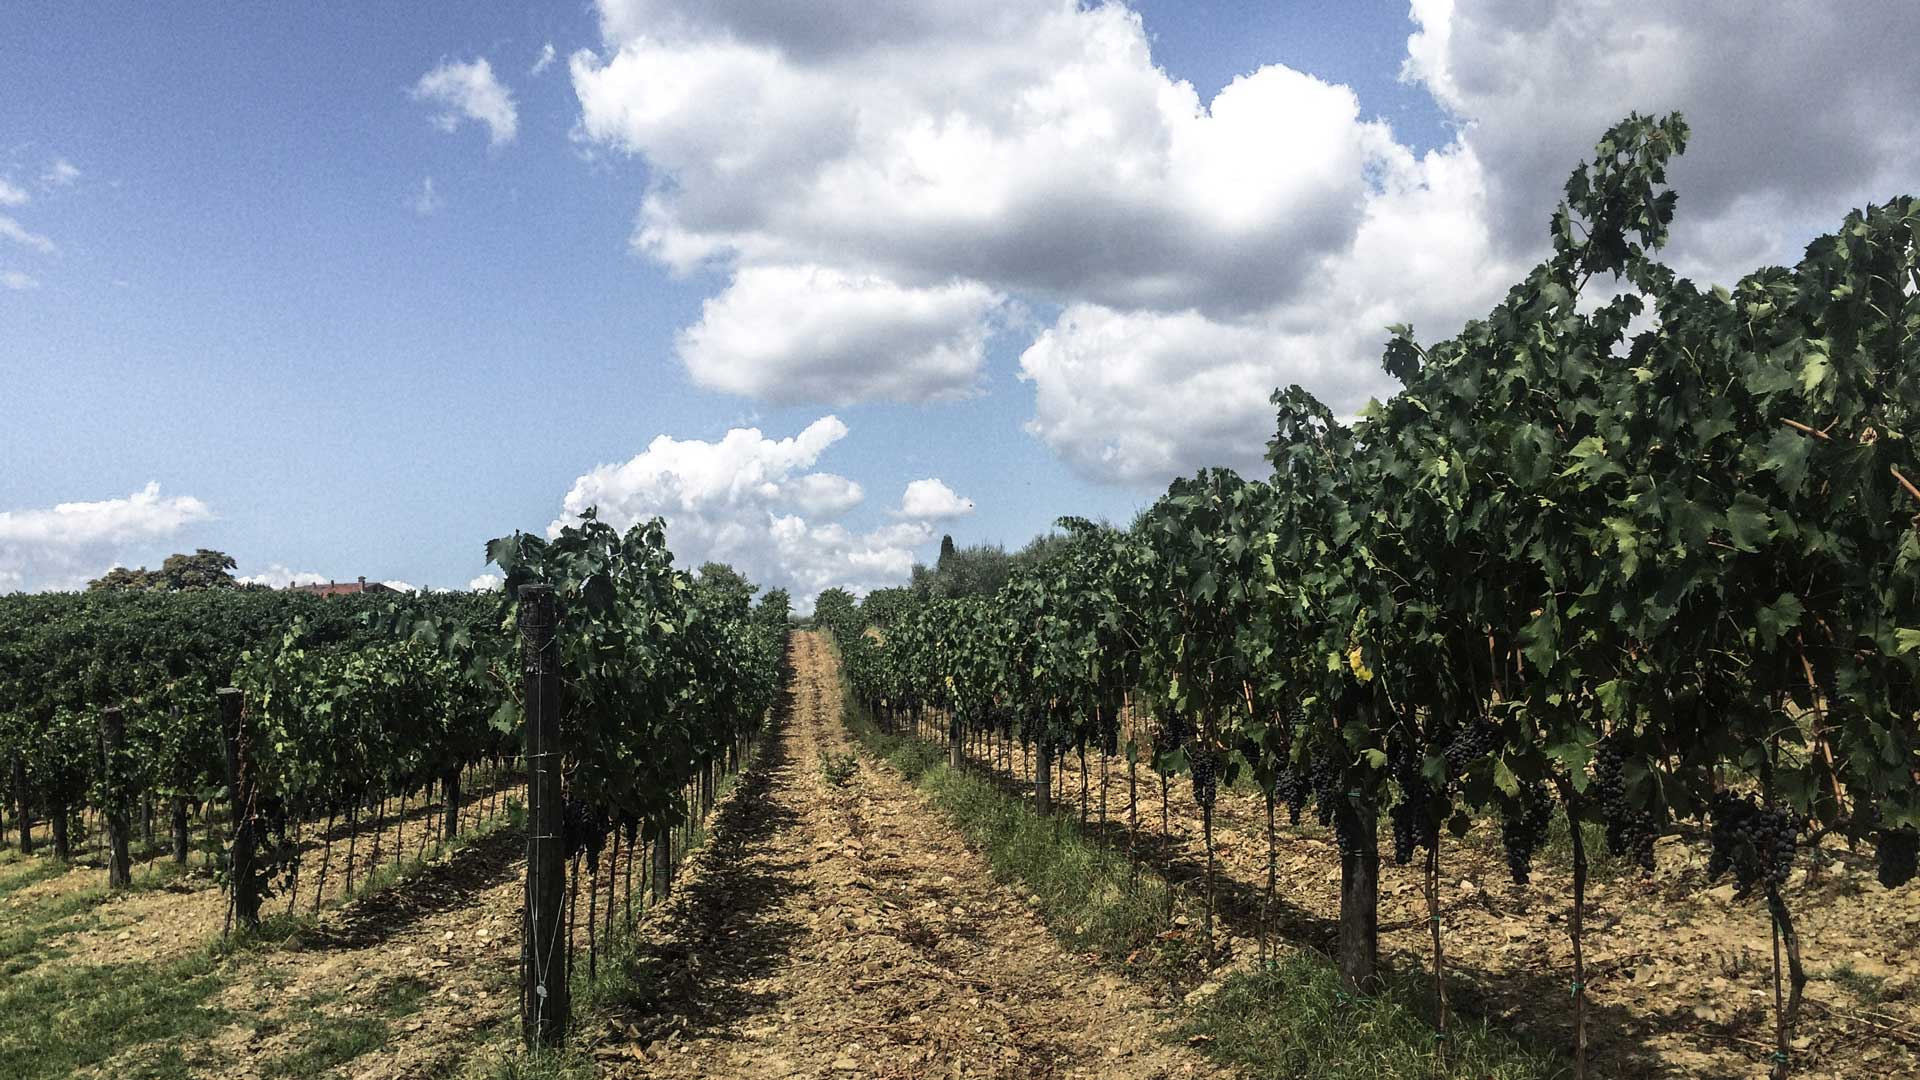 Copy of Vineyards in the late Summer